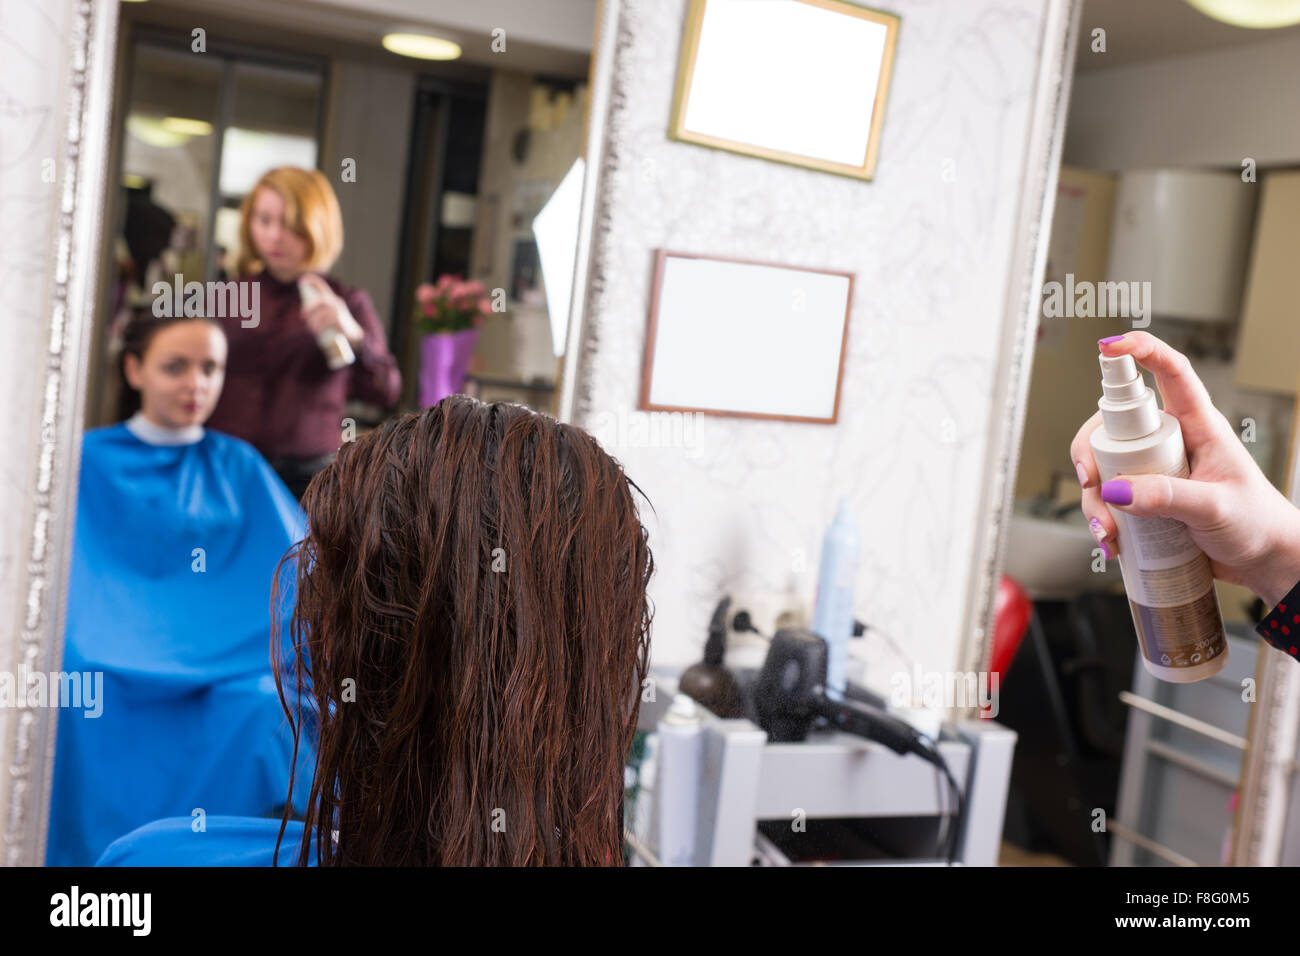 Close Up Rear View of Stylist Spraying Product onto Wet Hair of Brunette Female Client Seated in Salon Chair with - Stock Image